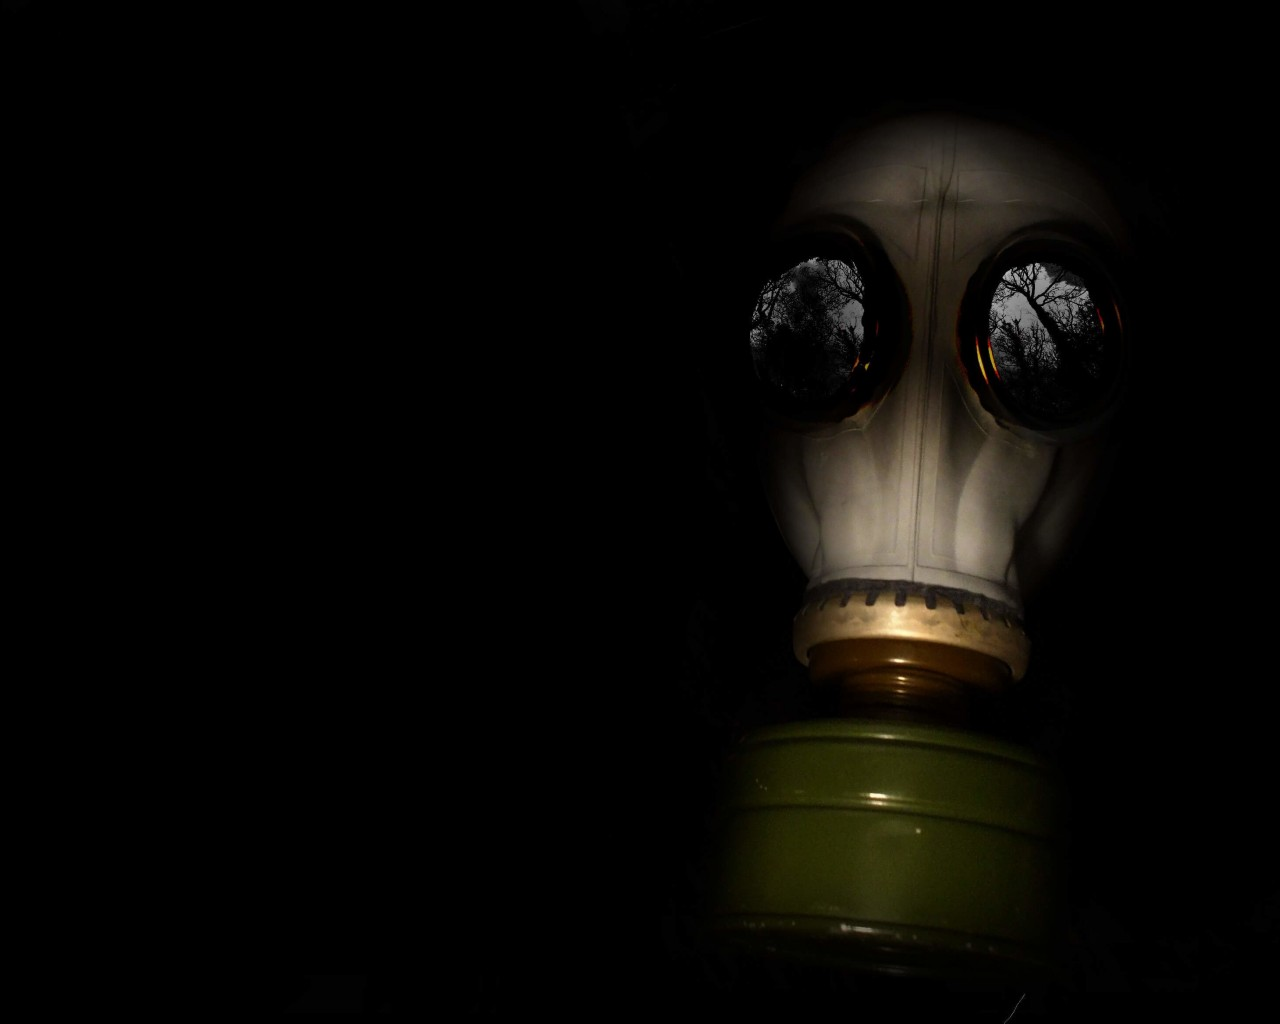 WWII Gas Mask Wallpaper for Desktop 1280x1024